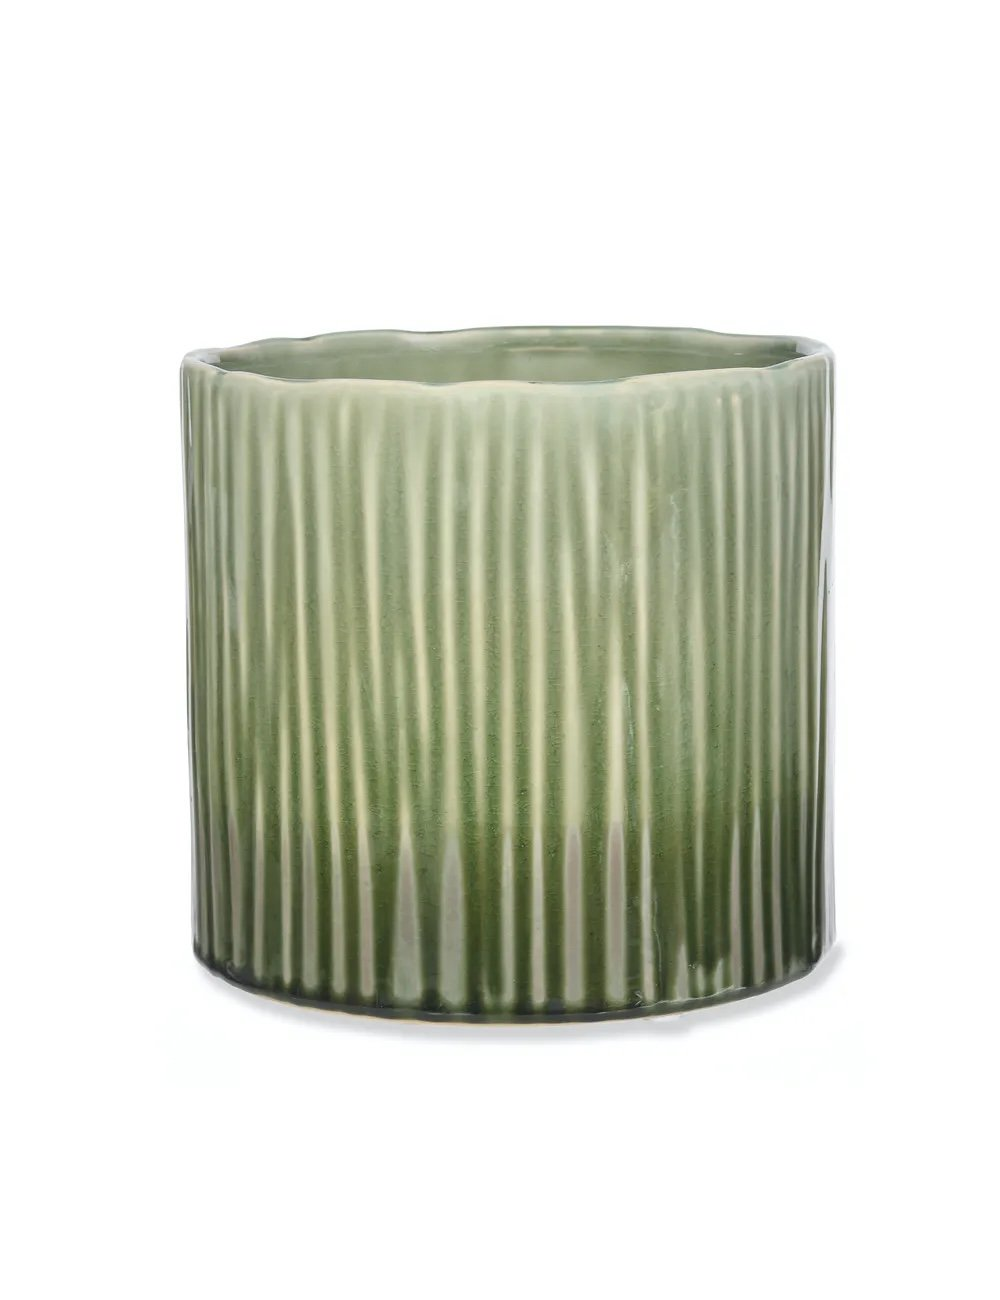 Large Ceramic Linear Plant Pot